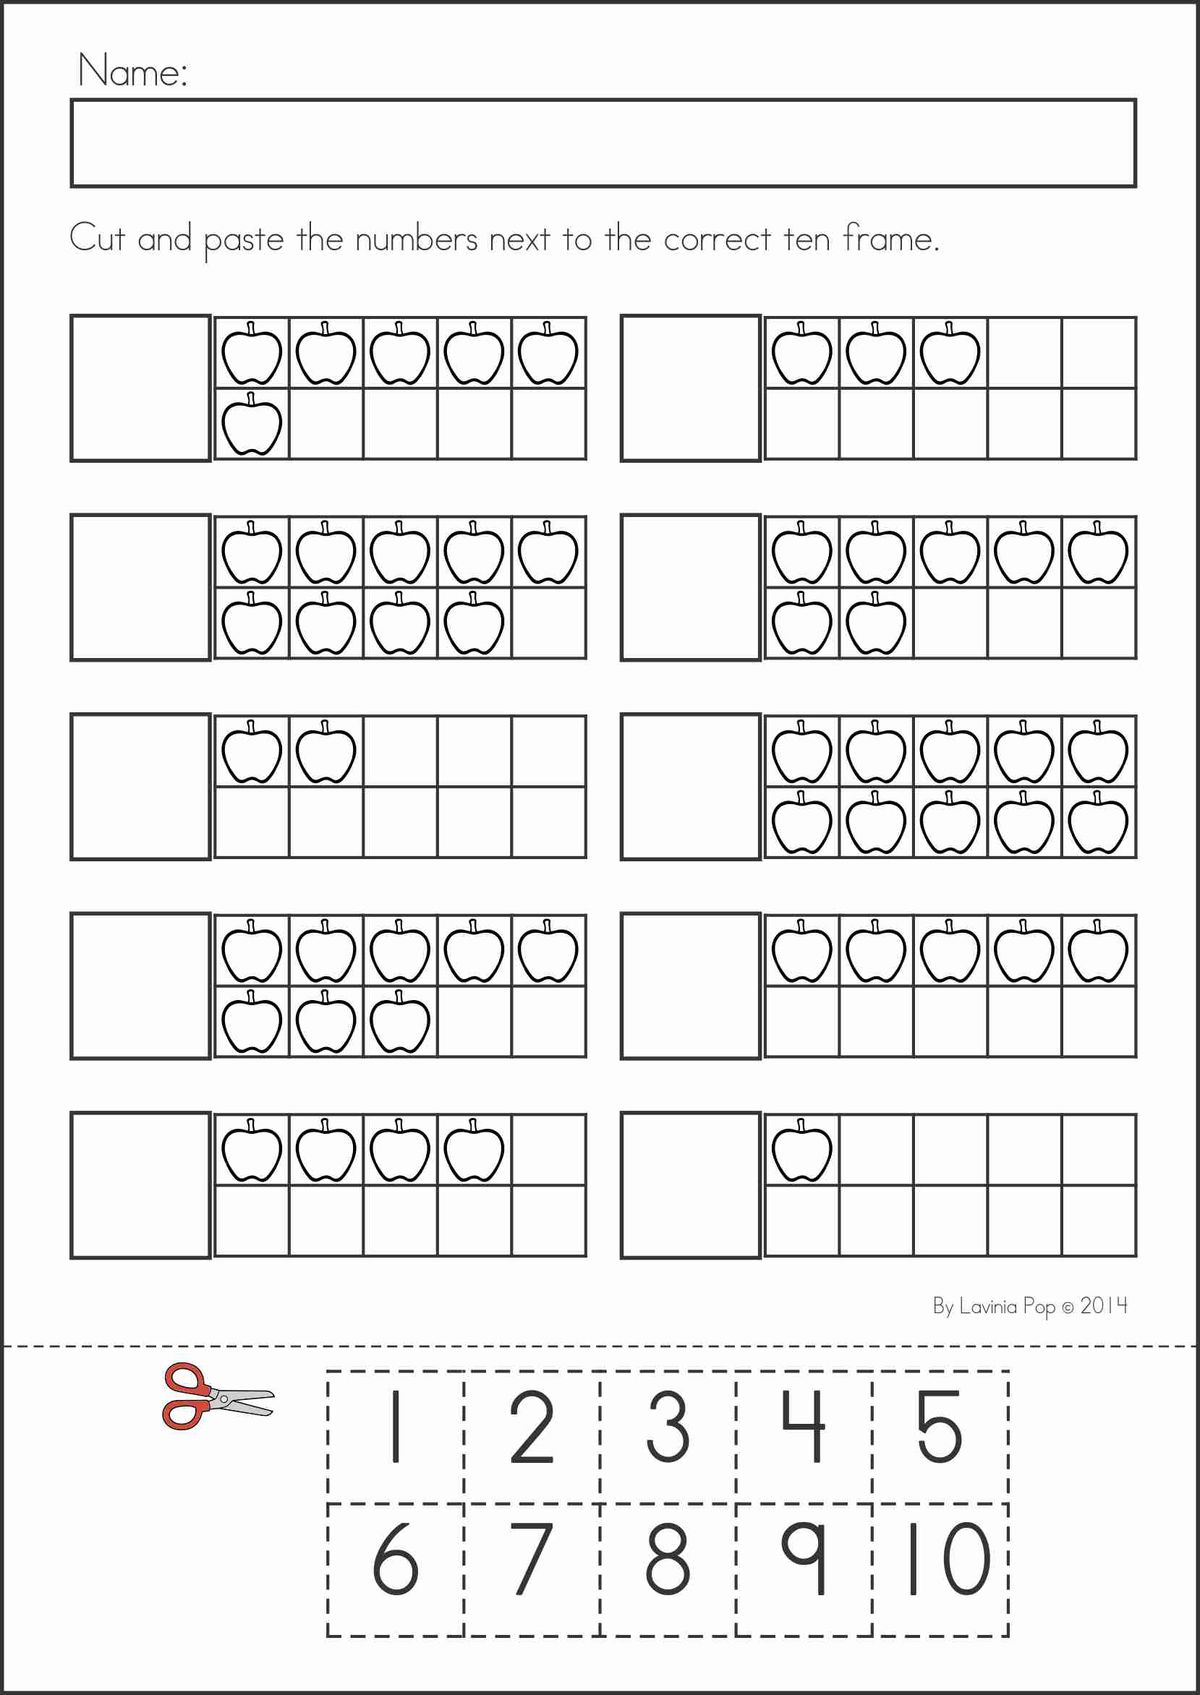 Back To School Math Worksheets For 3rd Grade : Back to school math worksheets first grade st